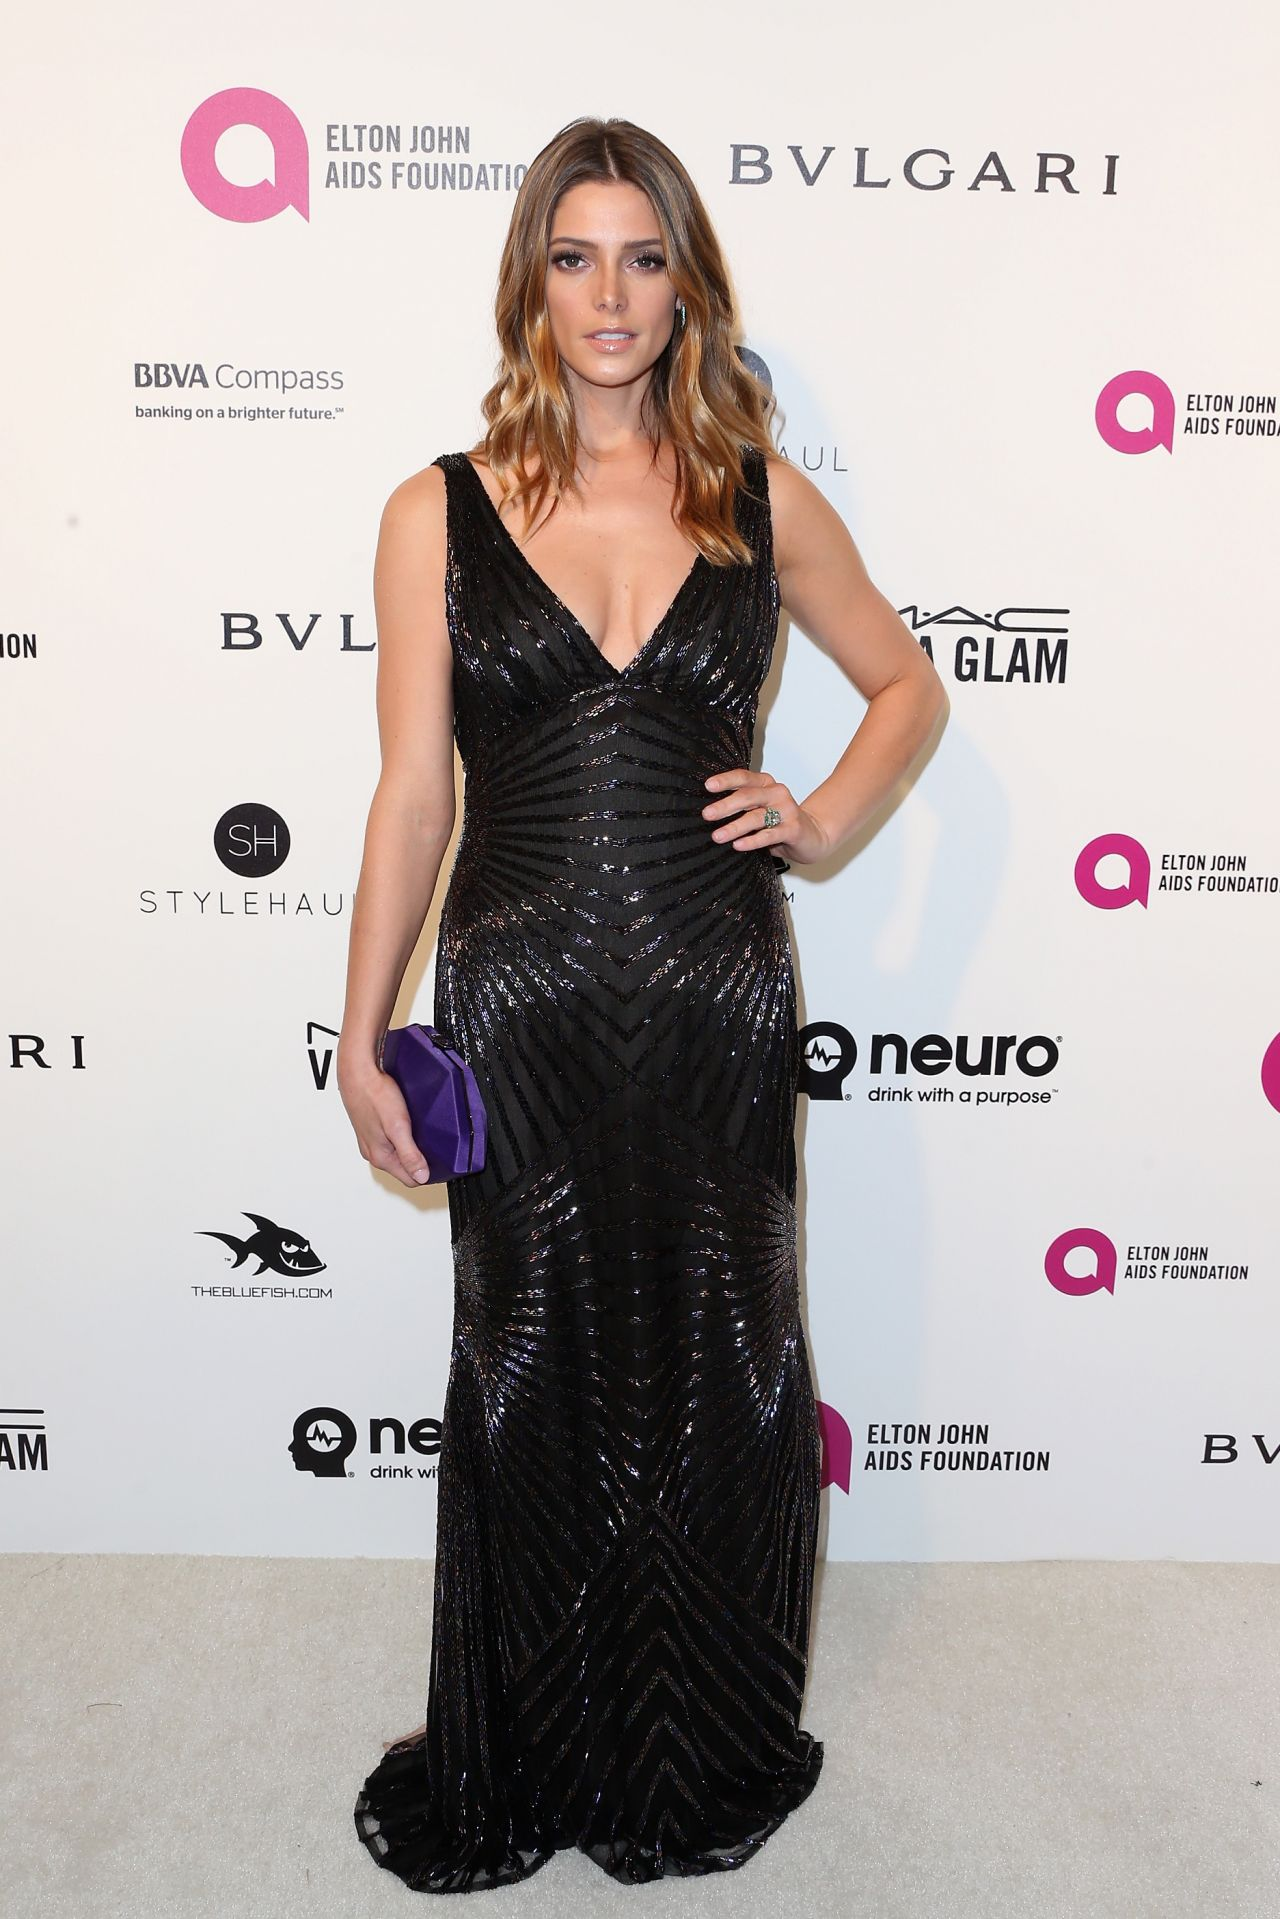 ashley-greene-2016-elton-john-aids-foundation-s-oscar-viewing-party-in-west-hollywood-ca-5